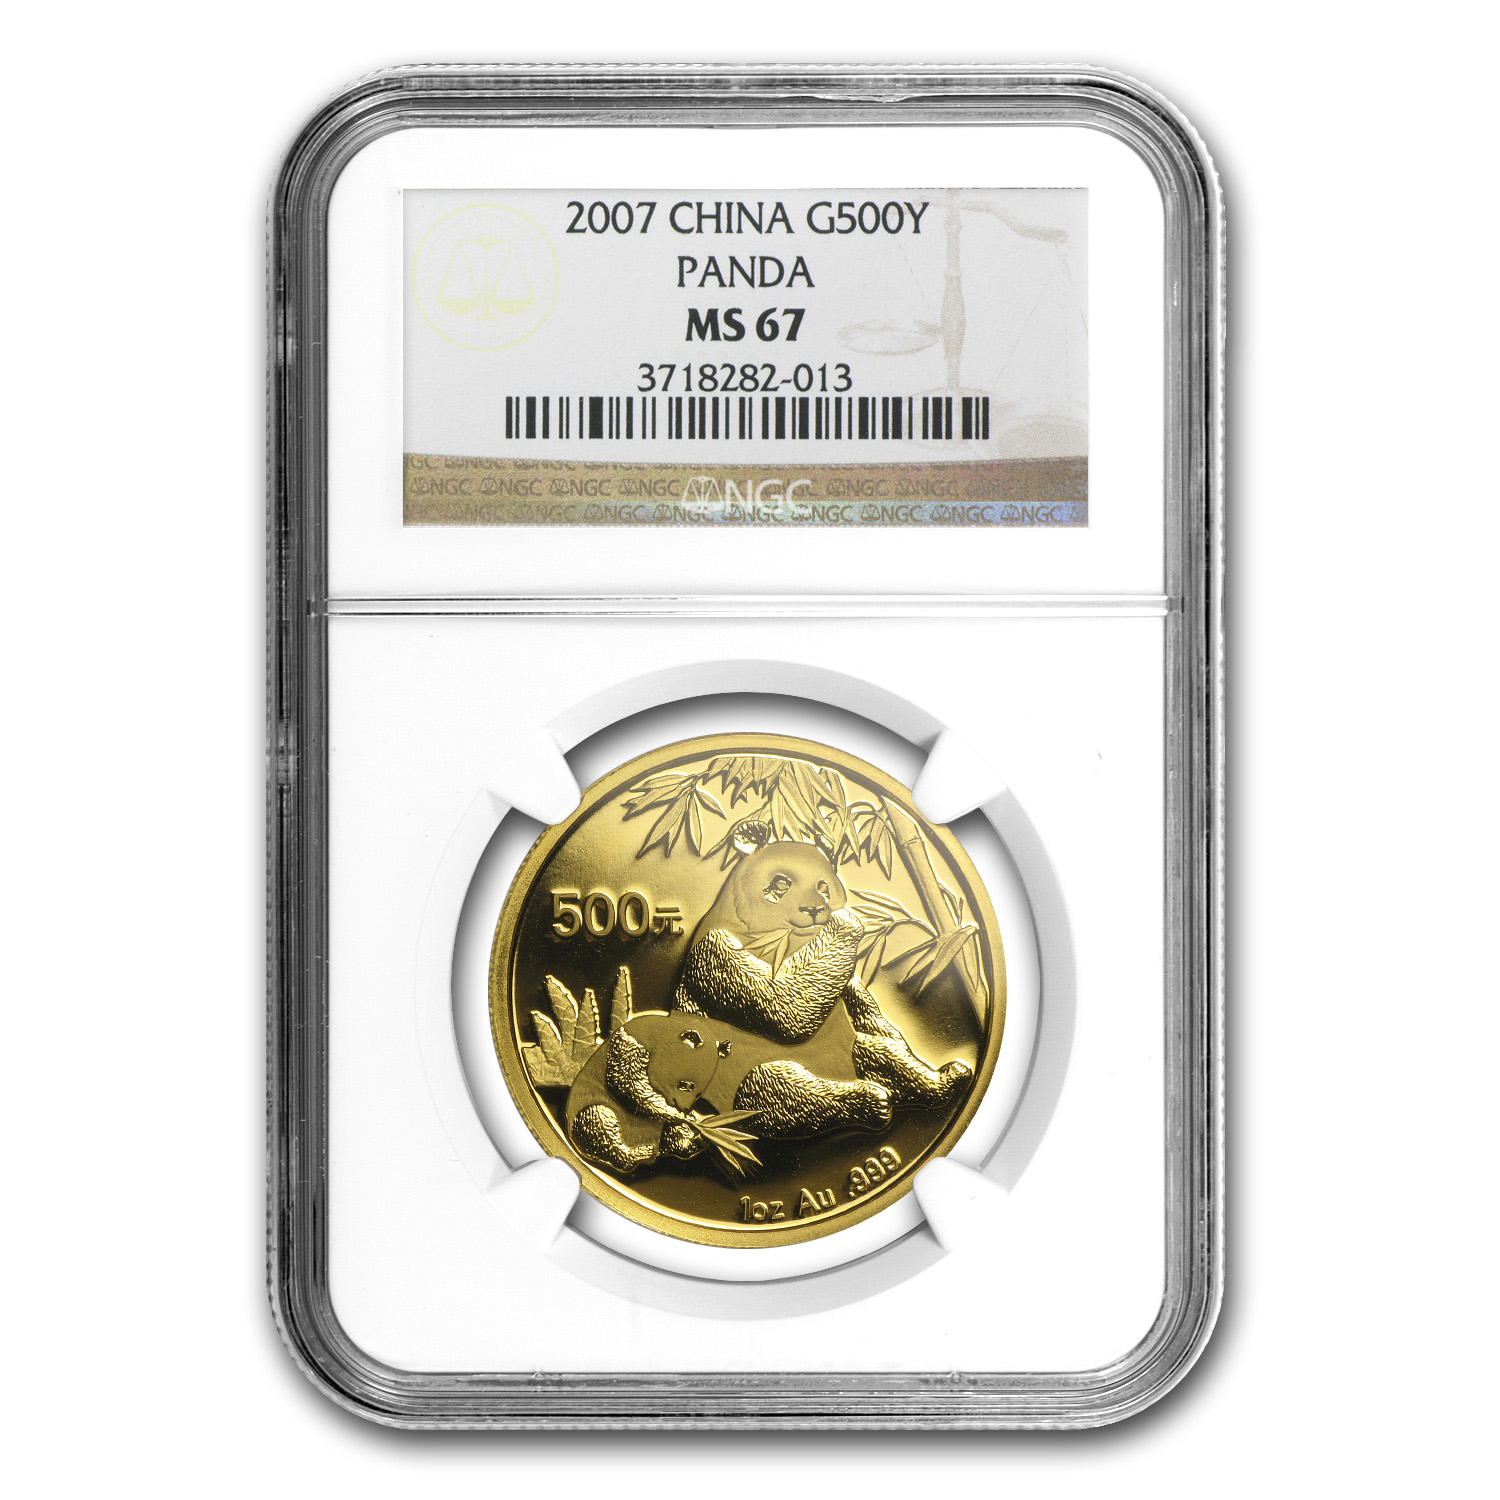 2007 China 1 oz Gold Panda MS-67 NGC